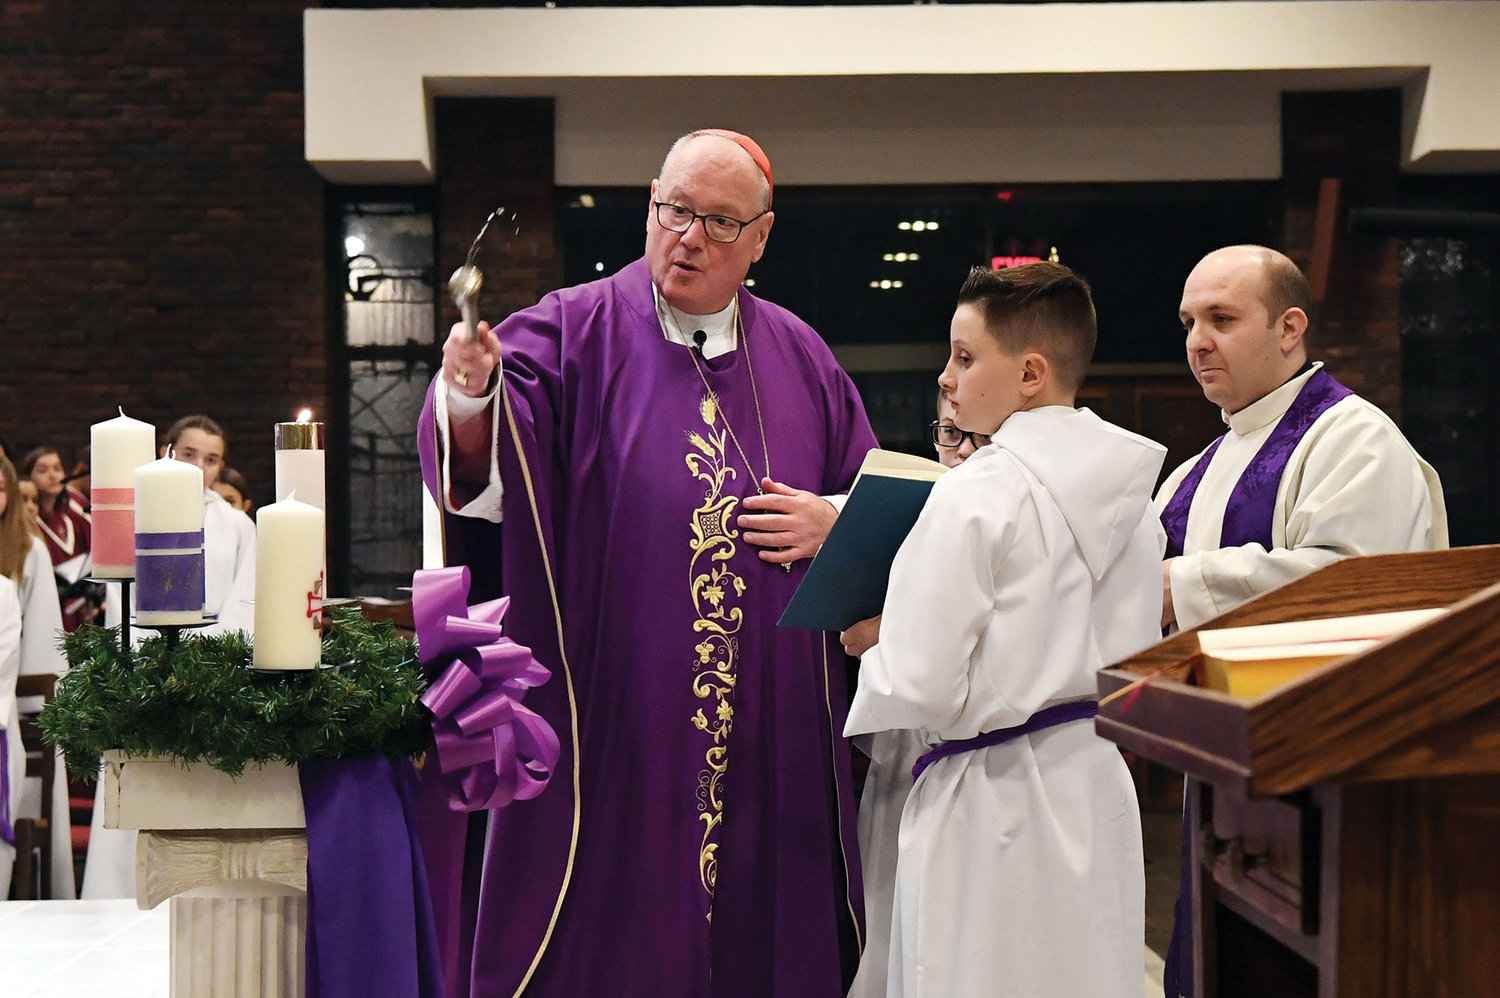 Cardinal Dolan sprinkles the Advent wreath with holy water during the Vigil Mass for the first Sunday of Advent he celebrated at Our Lady of Good Counsel Church on Staten Island Dec. 1. The bilingual liturgy was offered in English and Spanish, and a parish reception followed. Father Ambrose Madu is the pastor of Our Lady of Good Counsel.